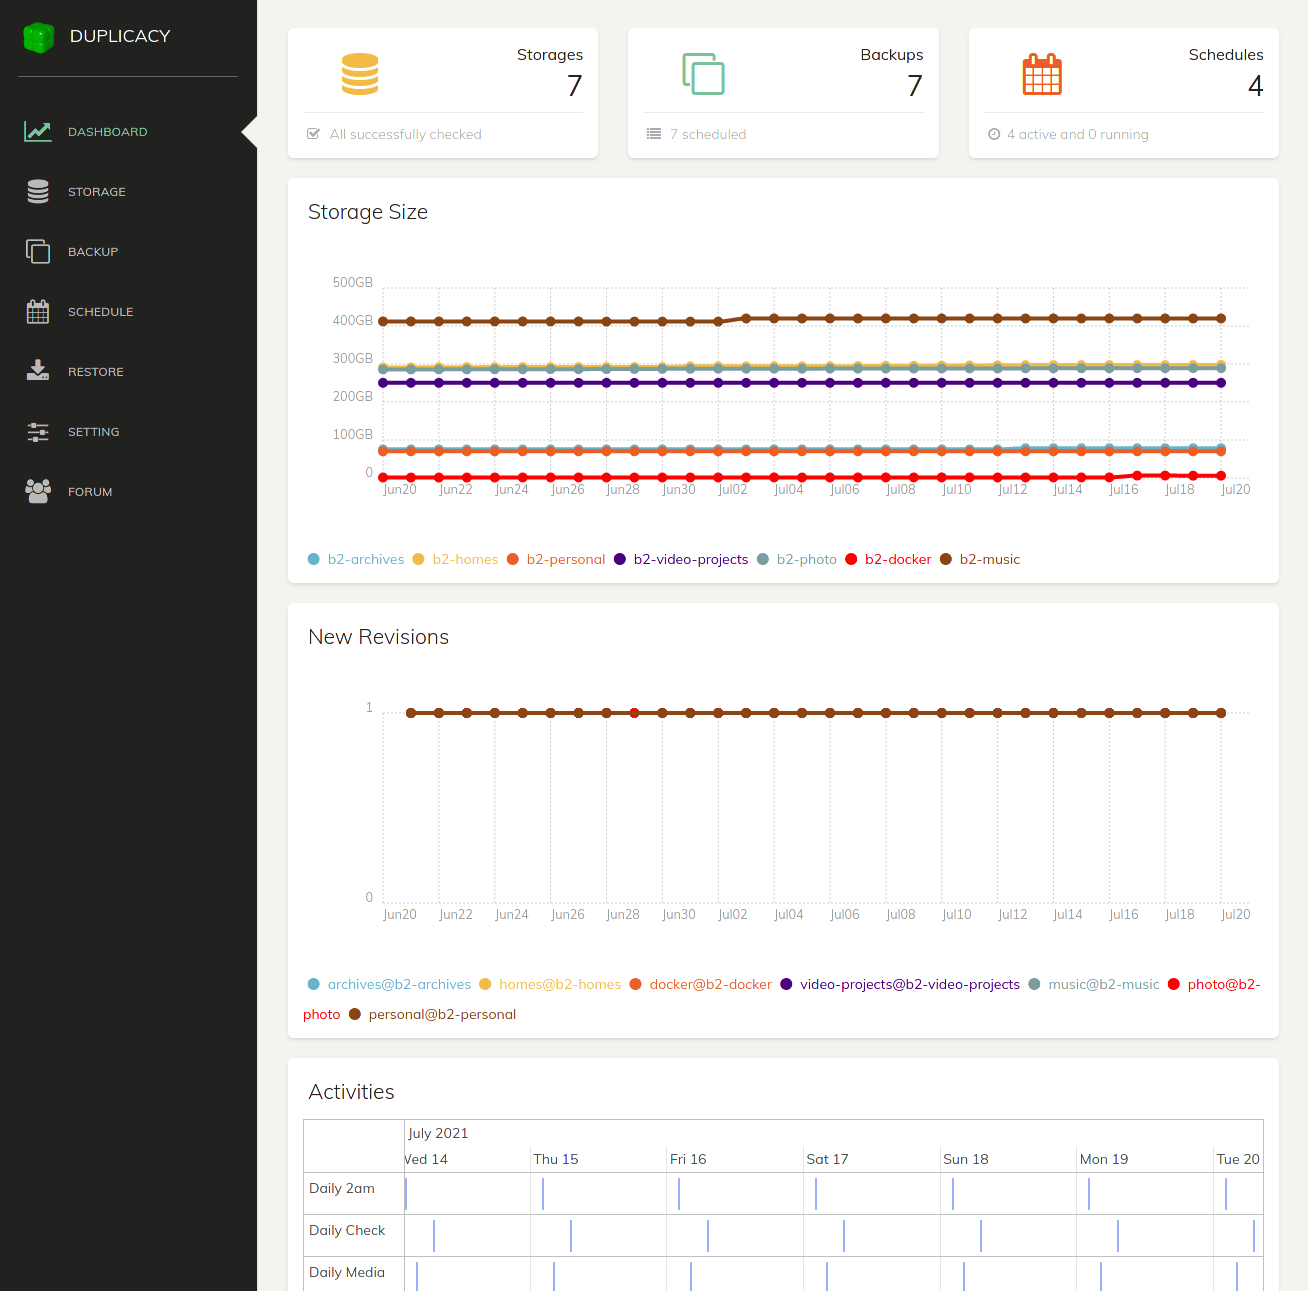 The Duplicacy dashboard showing several graphs of my backups